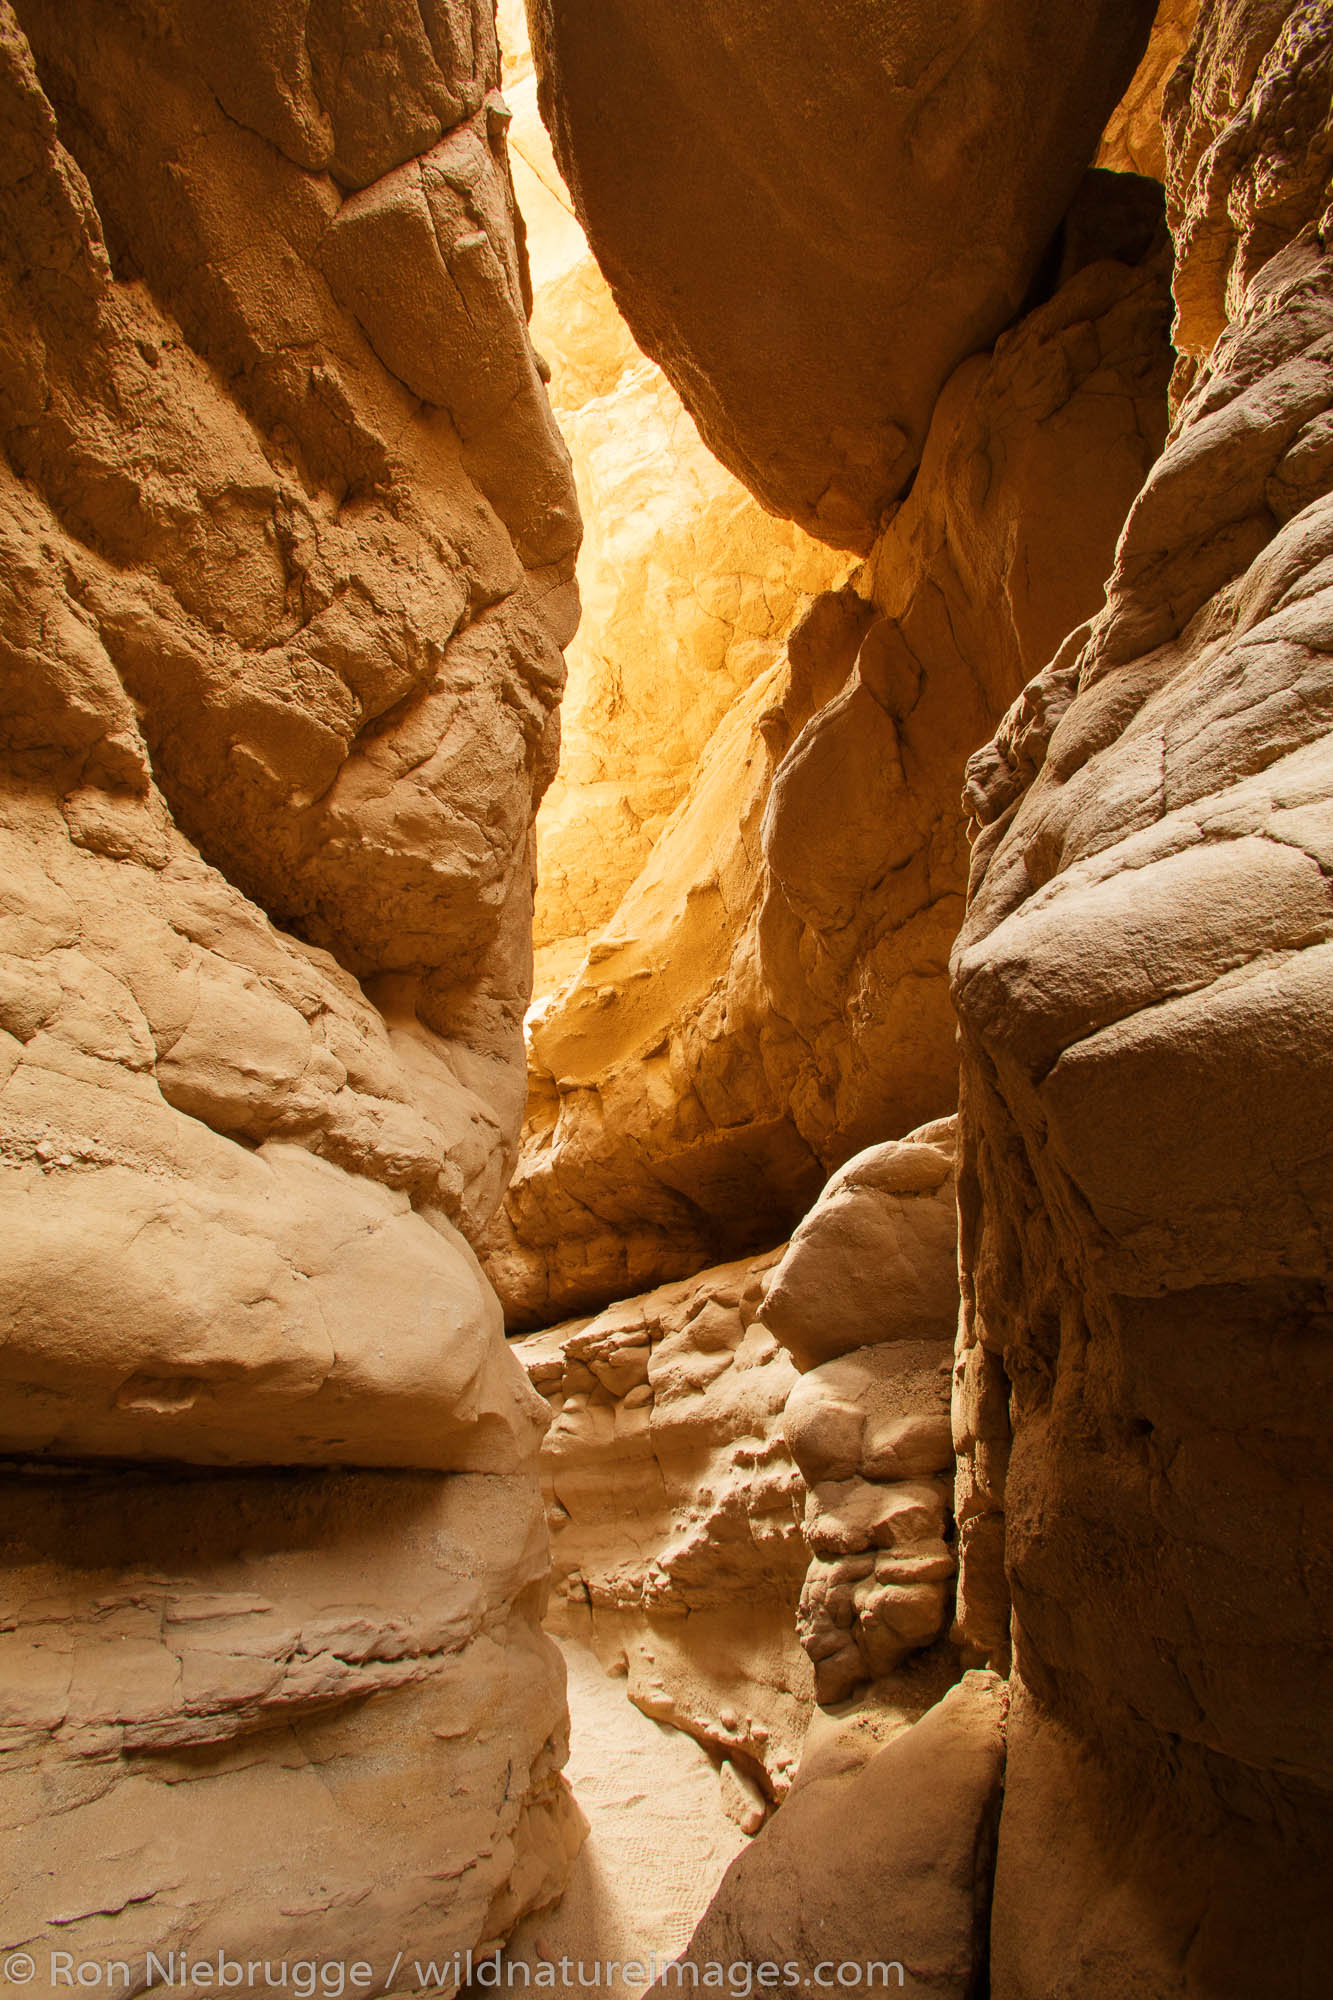 A slot canyon in Anza-Borrego Desert State Park, California.